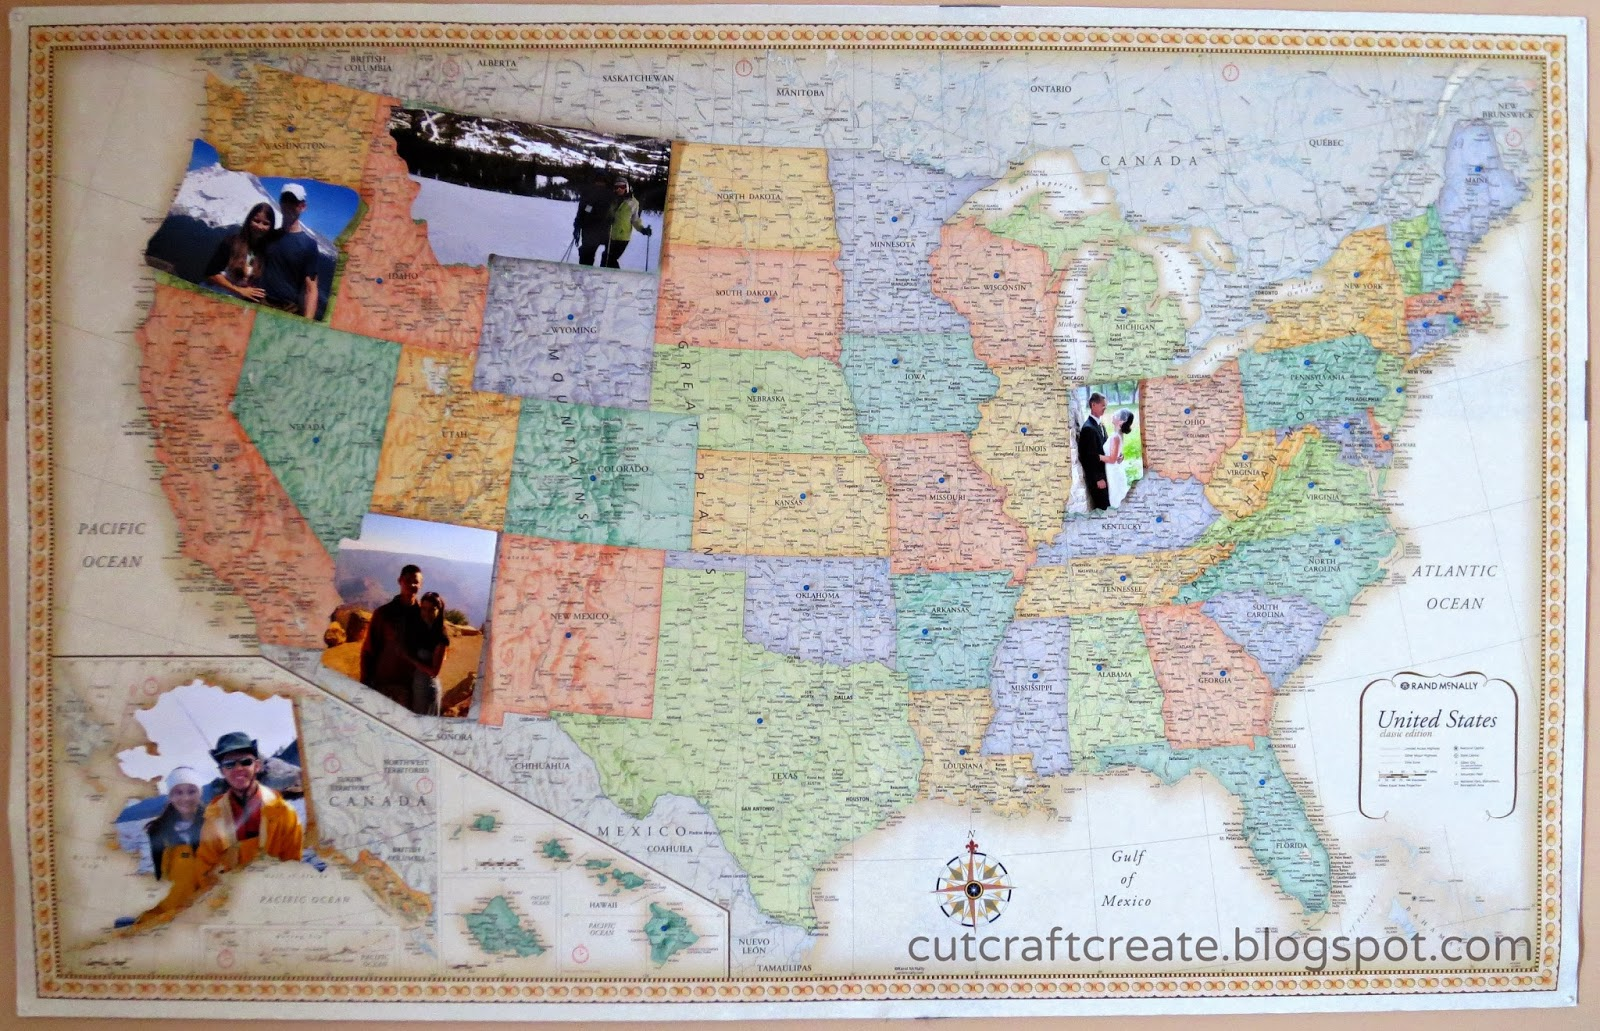 Cut Craft Create Personalized Photo Map For Our Paper Anniversary - Create us map